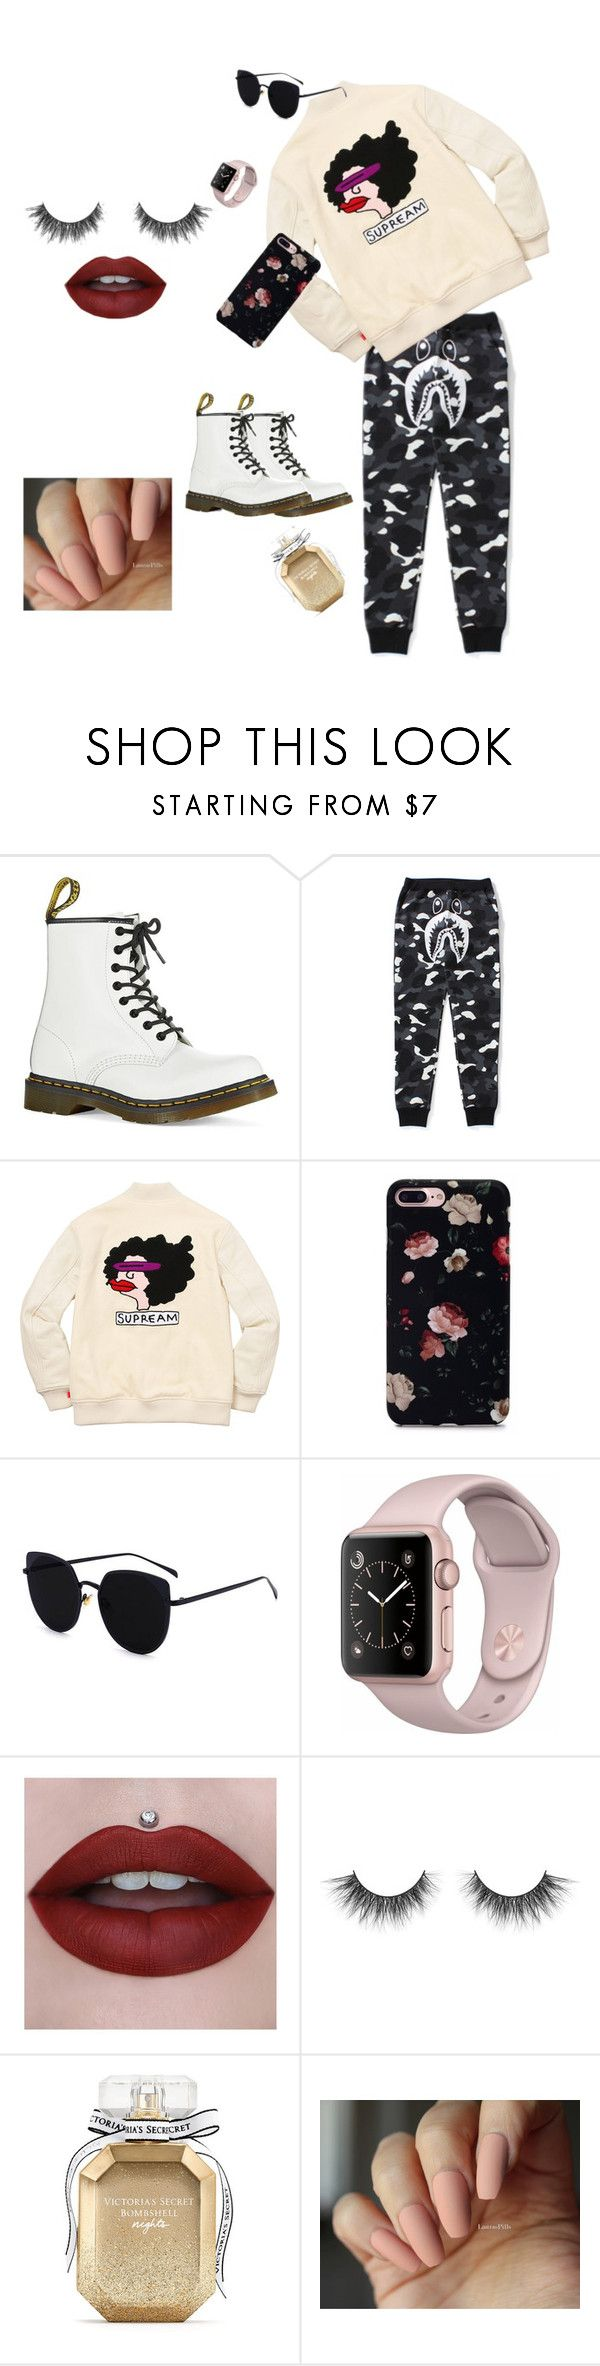 """Supreme + Bape"" by trungls ❤ liked on Polyvore featuring Dr. Martens, A BATHING APE, Akira and Victoria's Secret"